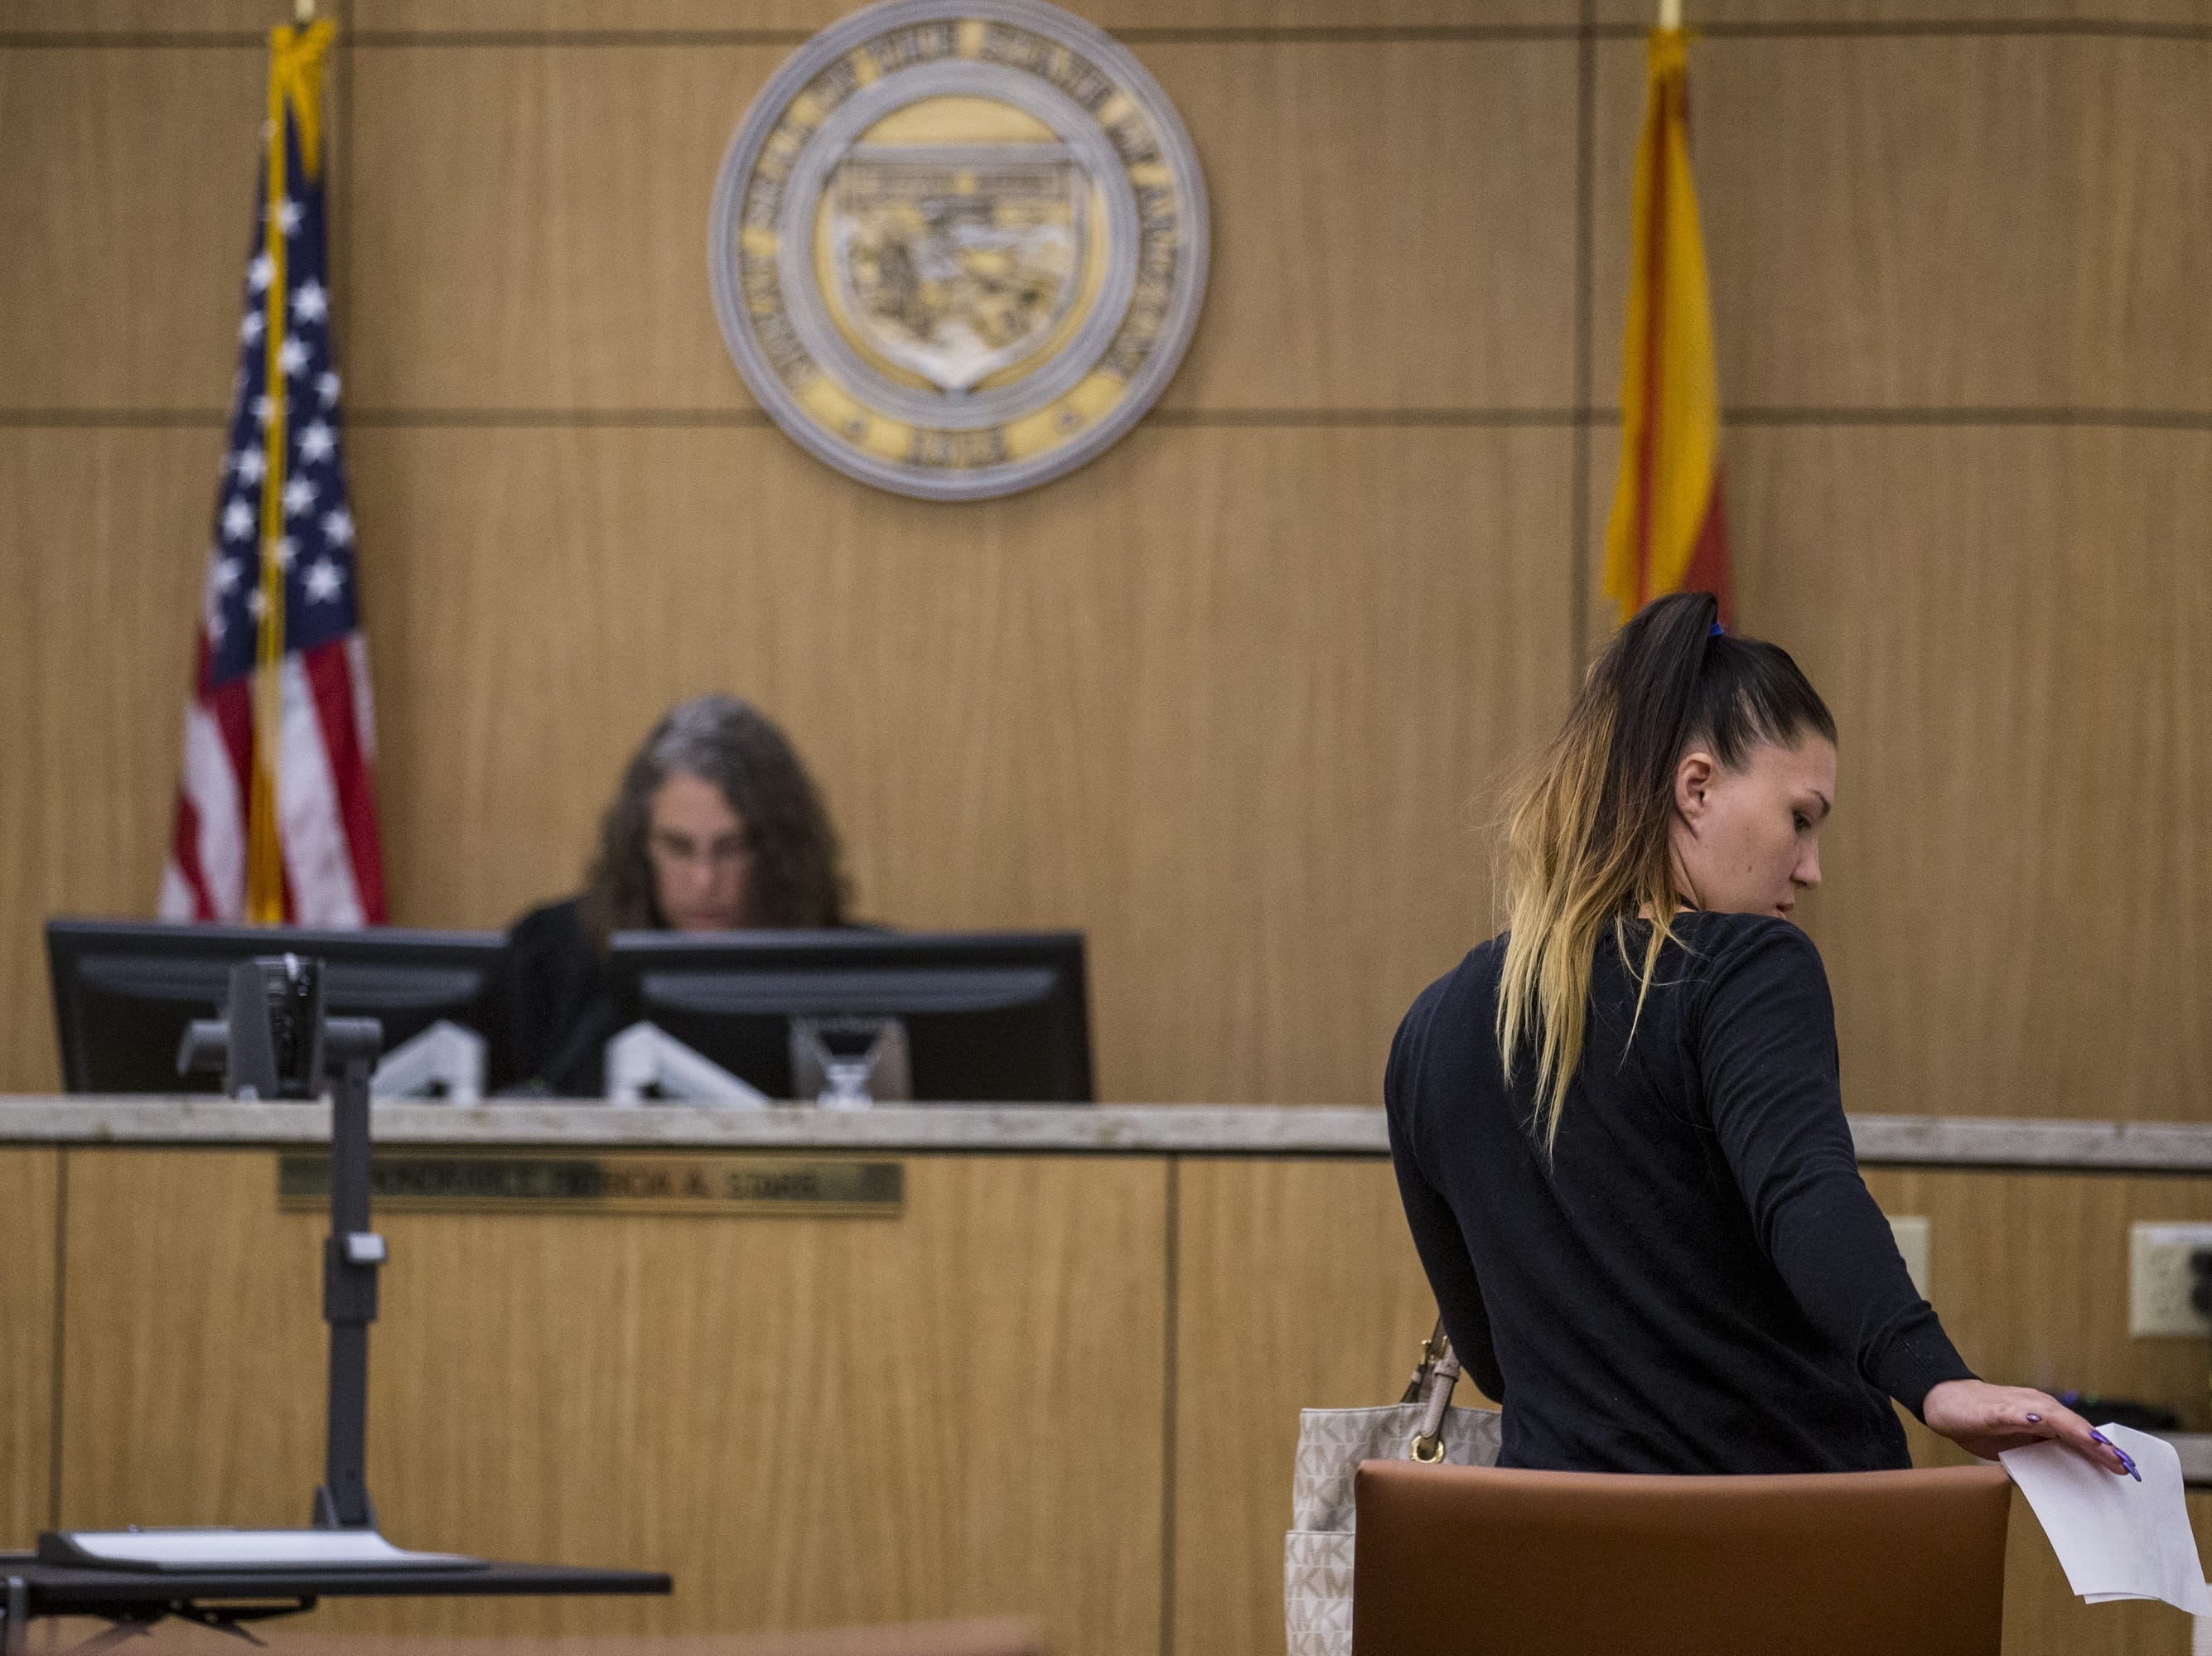 Jessica Tyrek leaves after receiving her judgment Friday, Aug. 17, 2018,  during a hearing for people who failed to show up for jury duty at Maricopa County Superior Court in Phoenix.